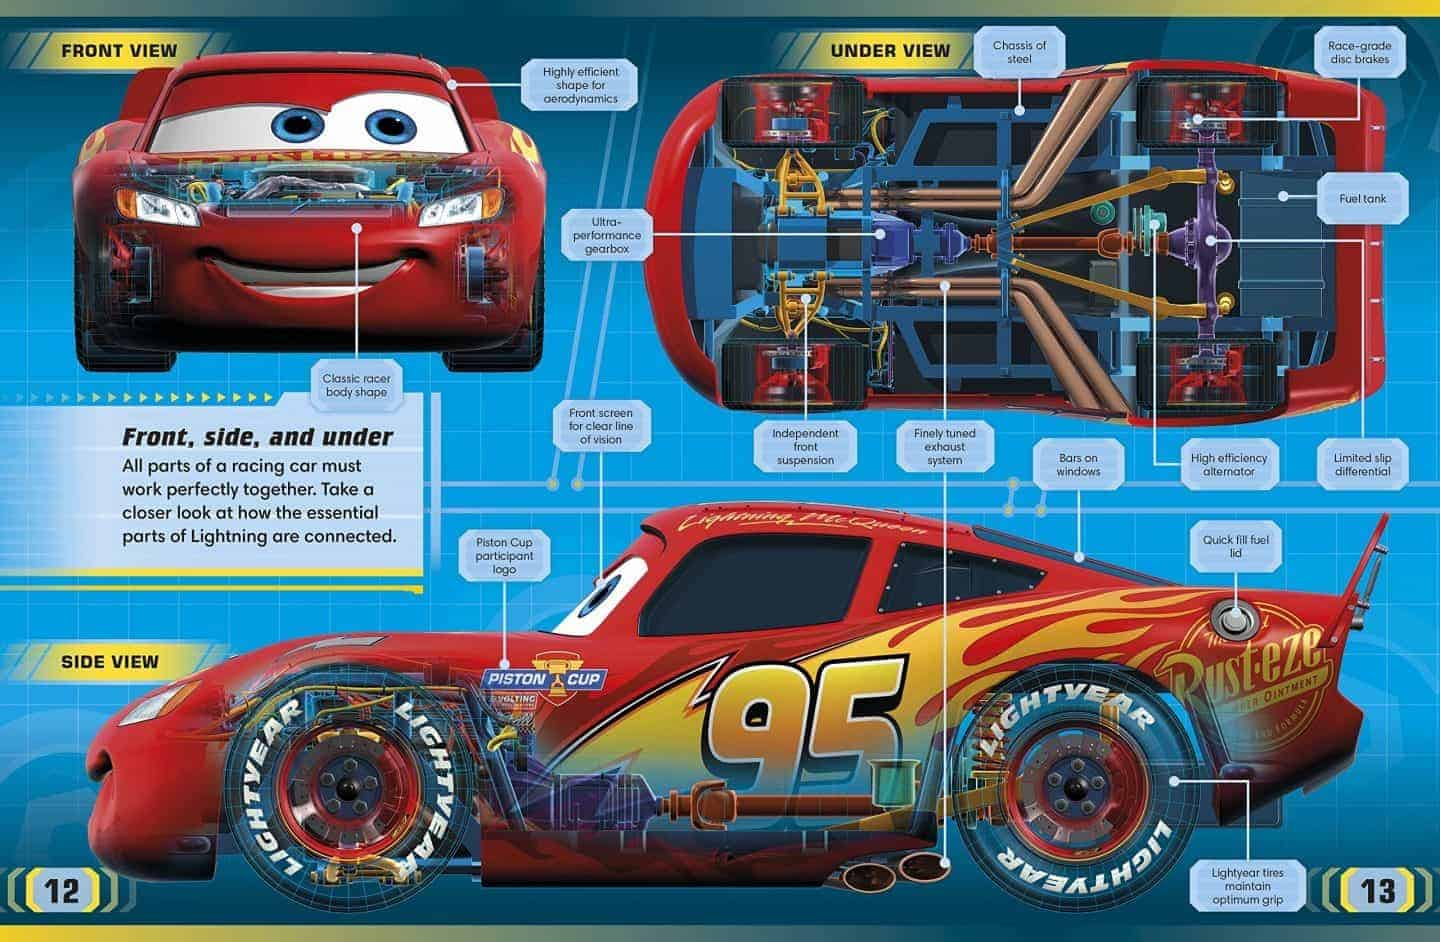 Disney Pixar Cars 3 The Essential Guide From Dk Books